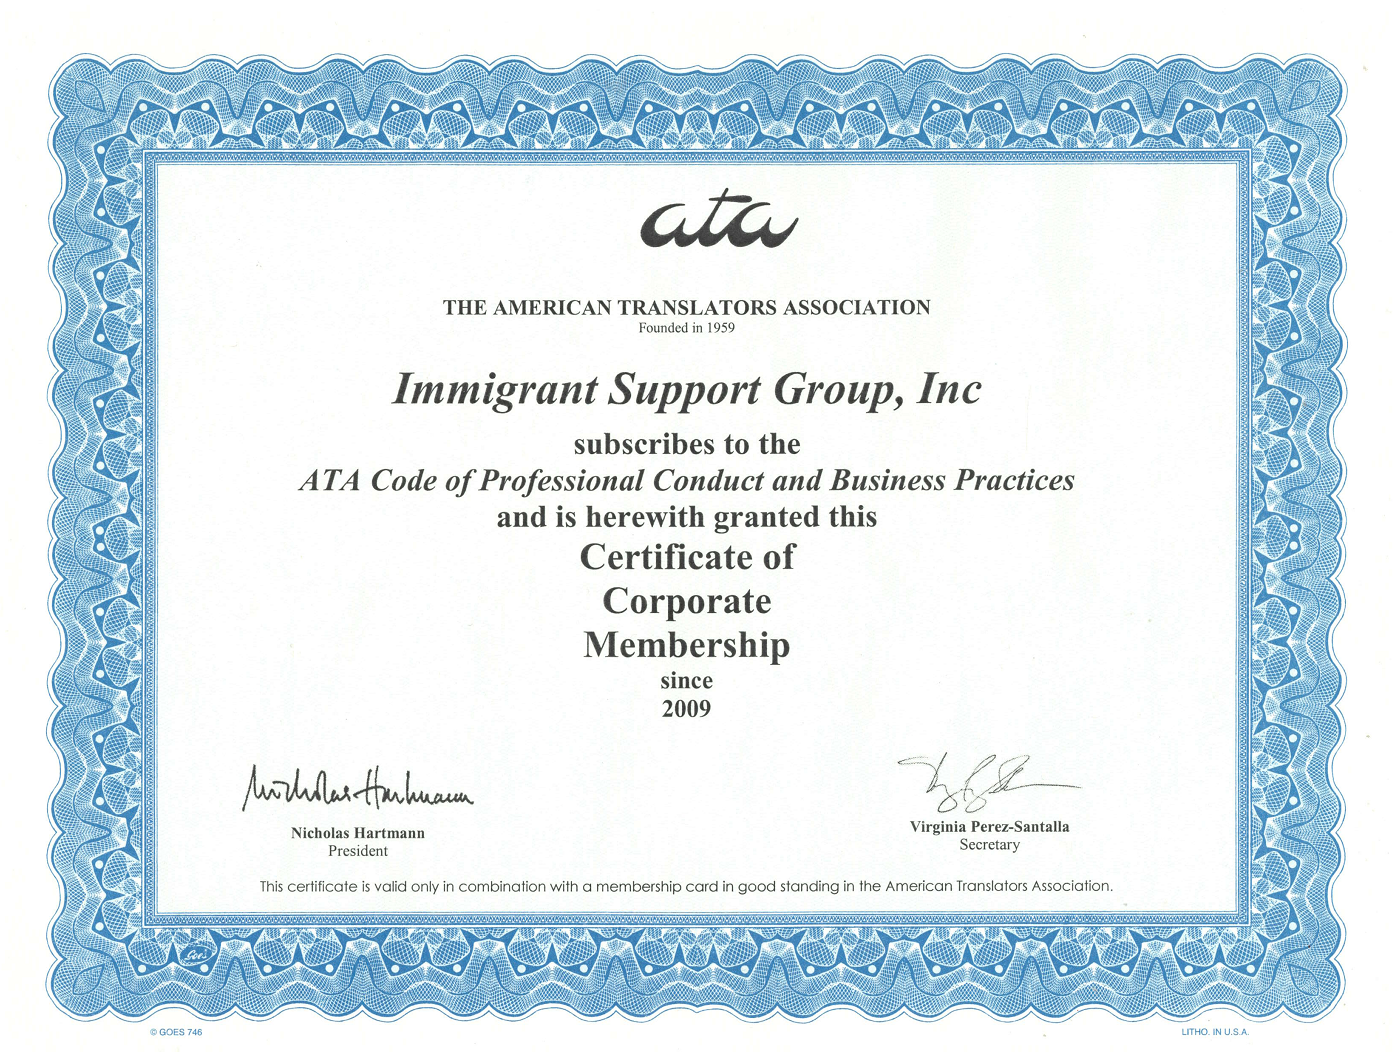 Founded in 2009 - ISG Translation World is a DBA of Immigrant Support Group, Inc., which is a corporate member of the American Translators Association - an indisputable sign of quality of all the translation services.